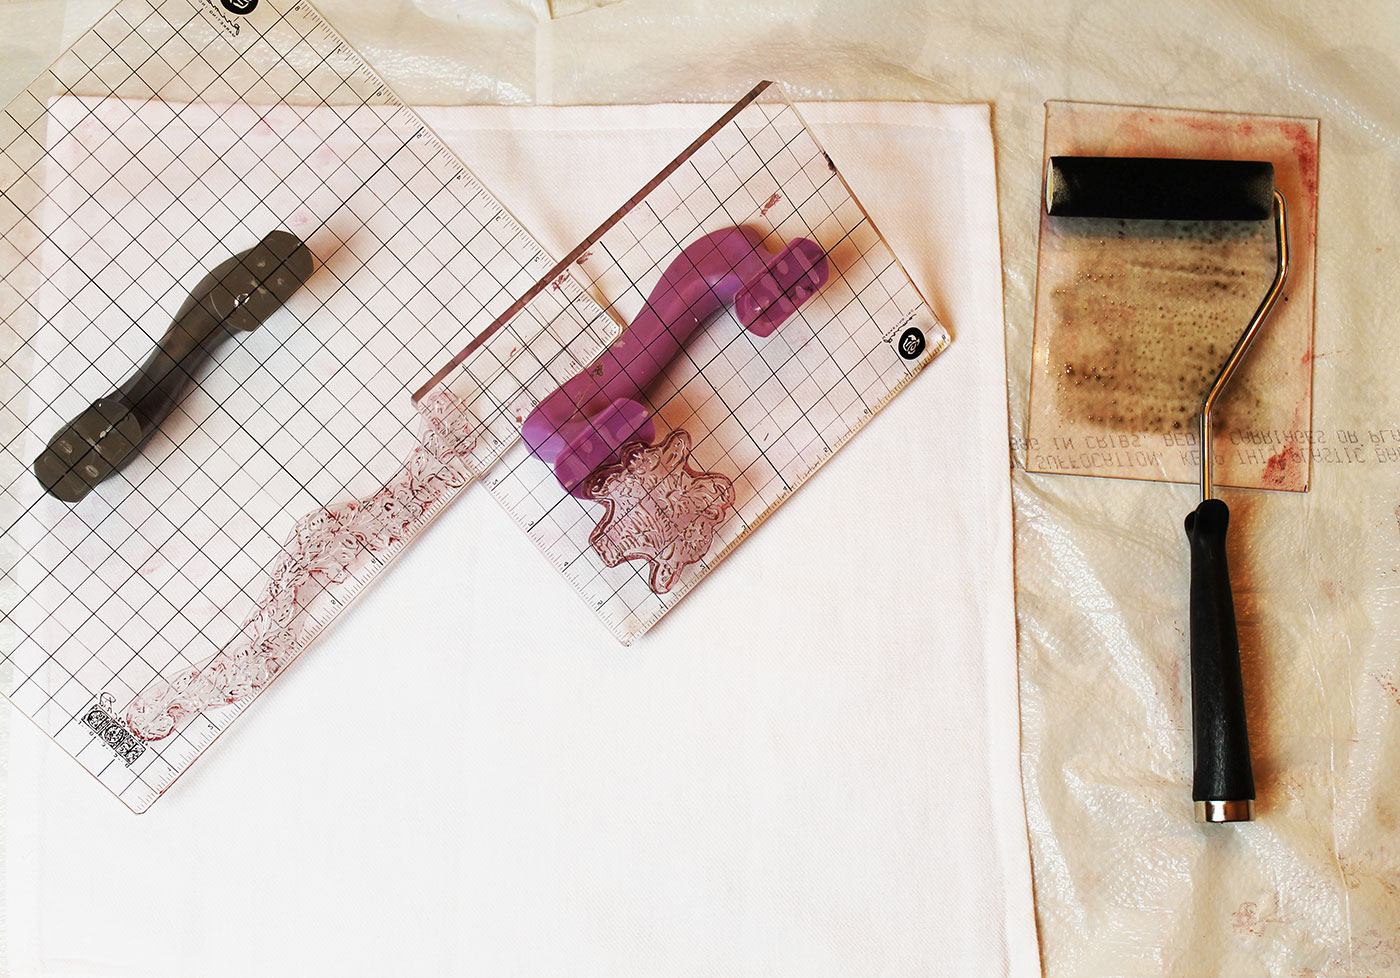 1: Protect your work surface with a trash bag or scrap fabric. Prepare your napkin by ironing out all the wrinkles for a nice smooth surface to stamp on and layout it out flat on a hard surface for best results. Add stamps to stamp blocks and add ink to your roller.